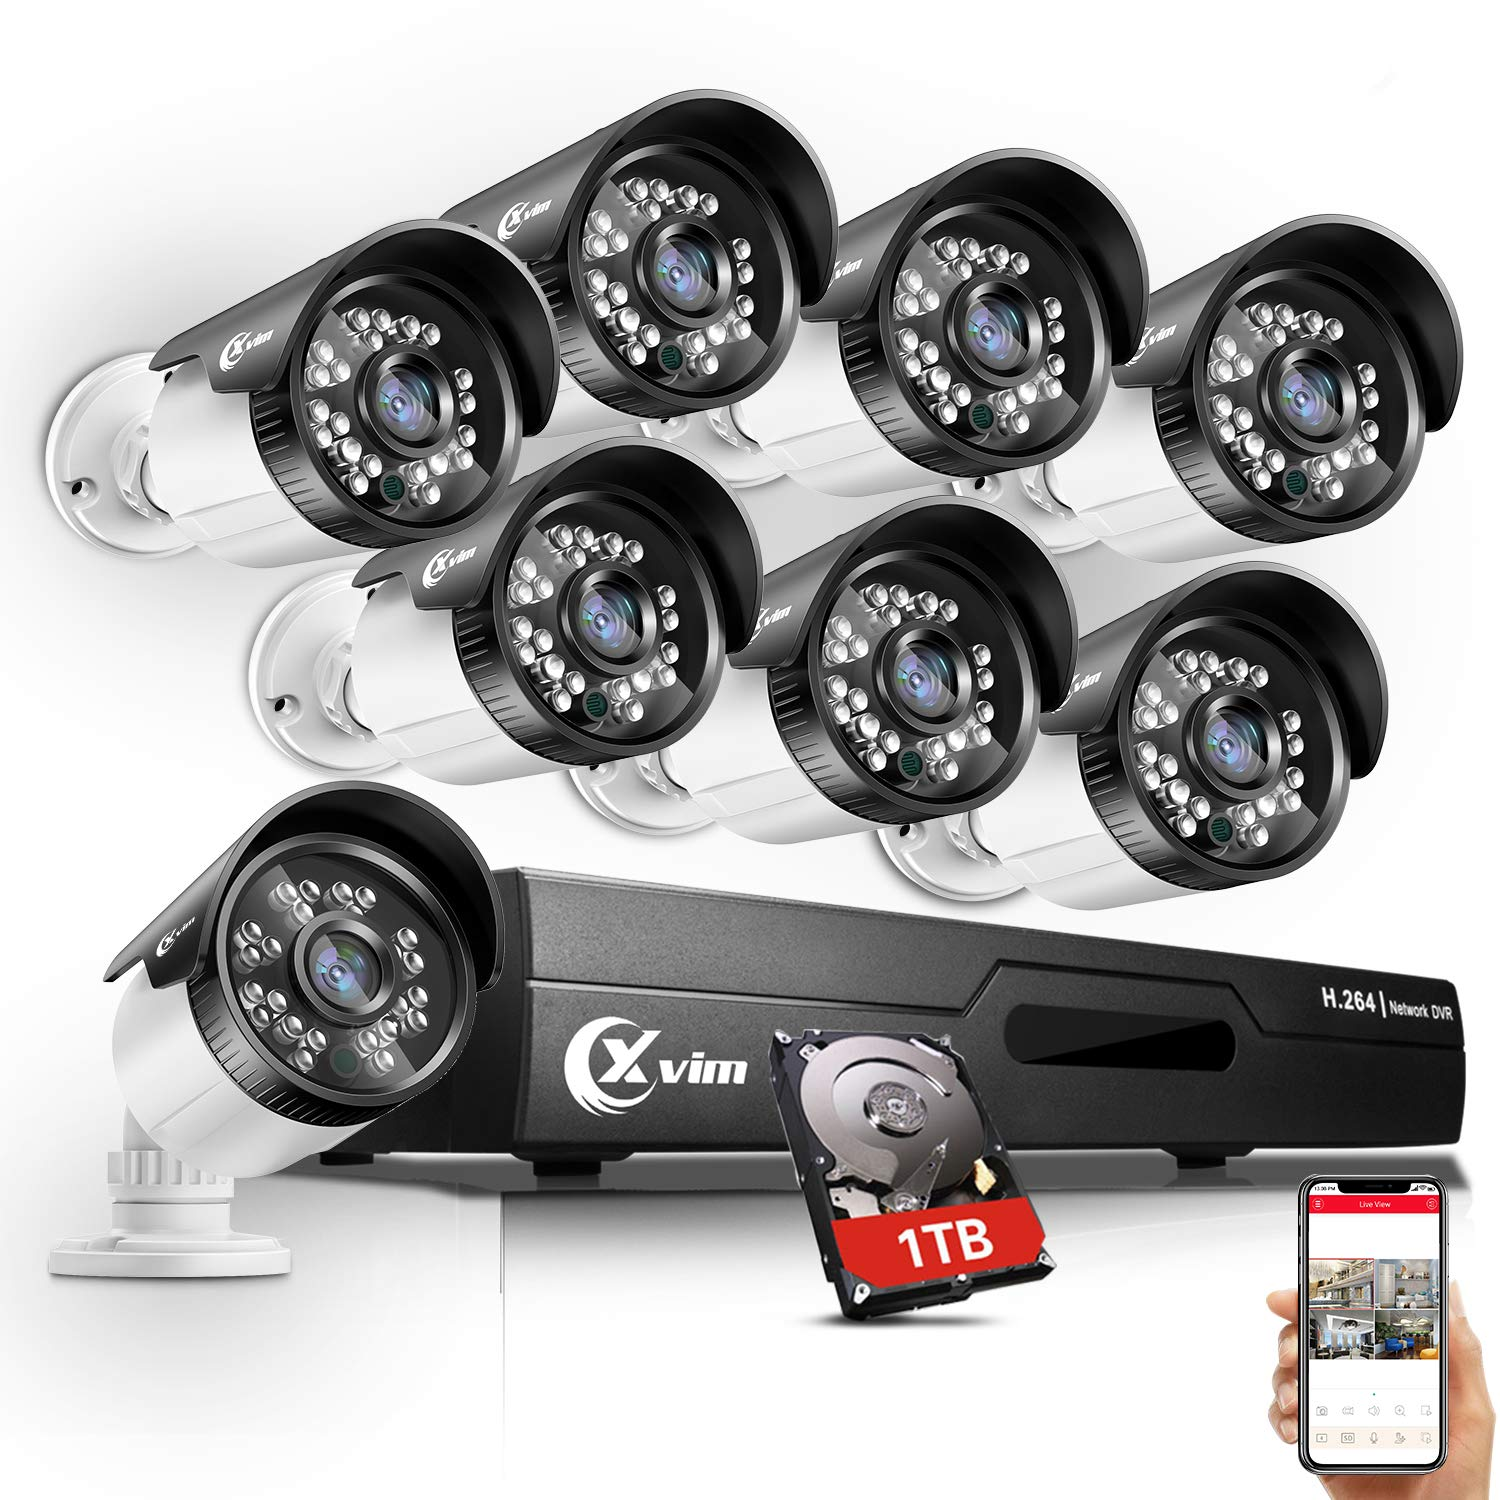 XVIM 720P Outdoor Home Security Camera System – 8 Channel 1080N DVR 1TB Hard Drive 8 HD Bullet Surveillance Cameras with Night Vision and Motion Detection